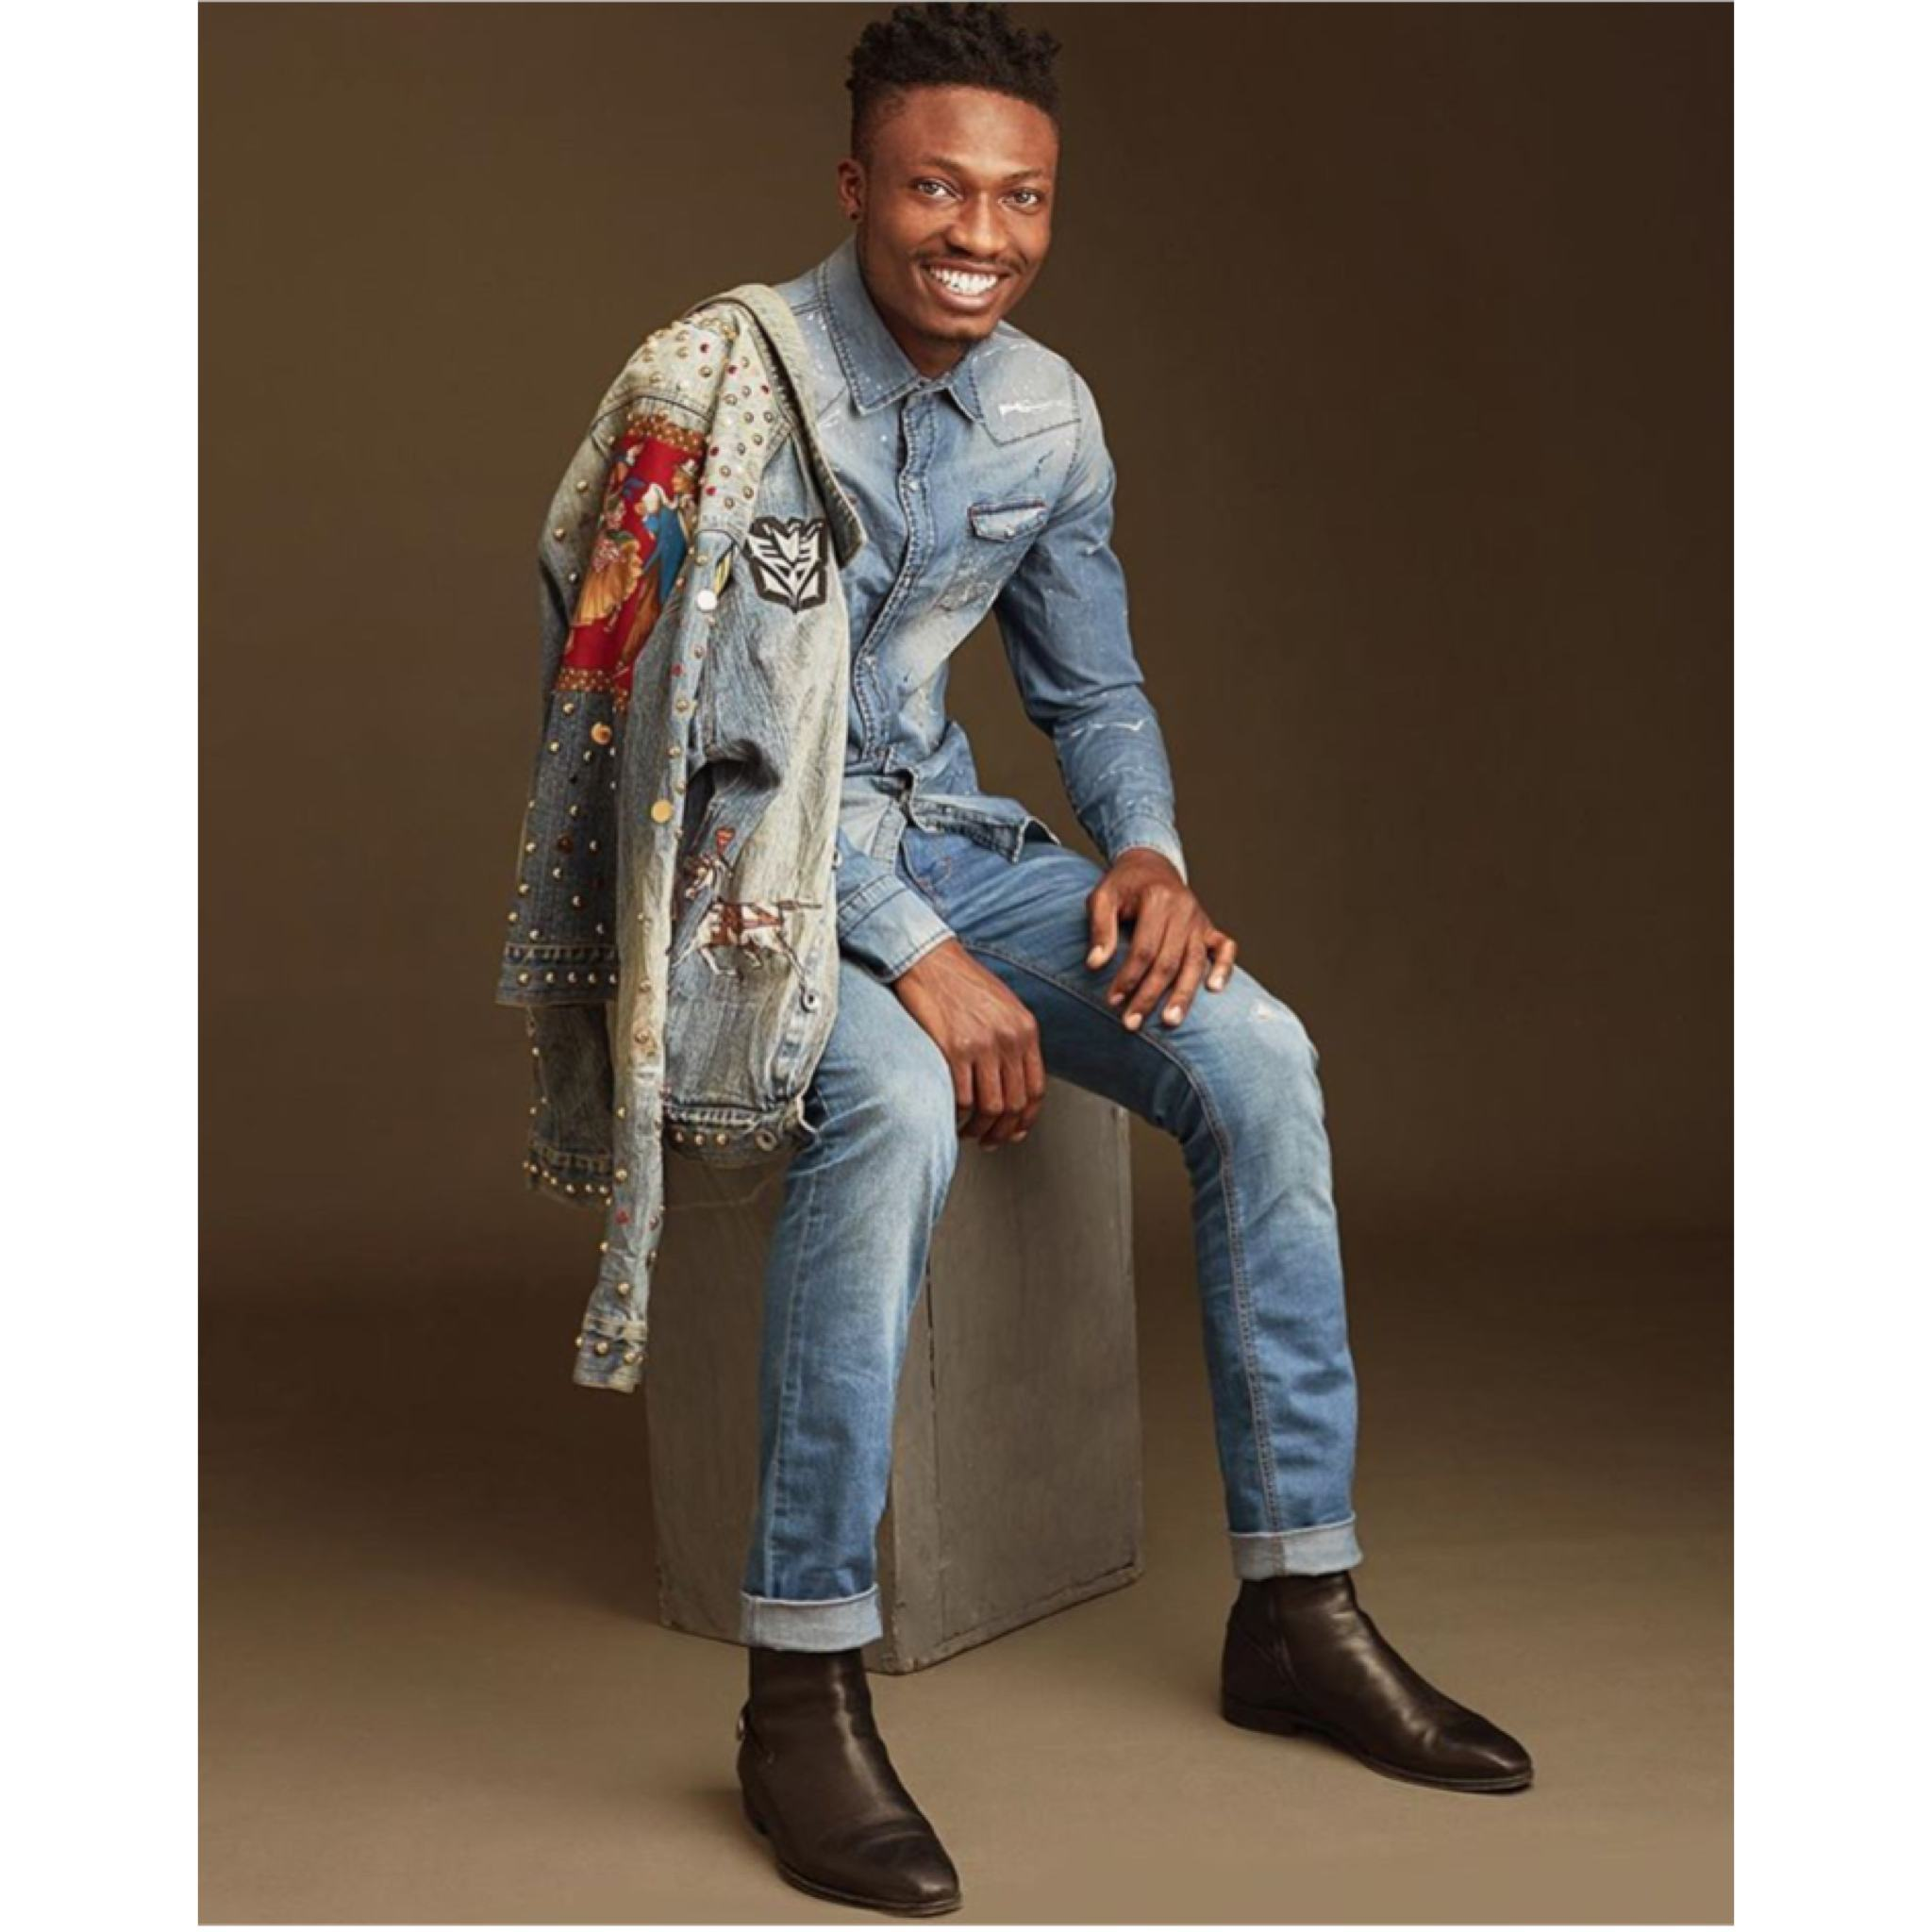 BBNaija Winner Efe Graces The Cover Of ThisDay Style